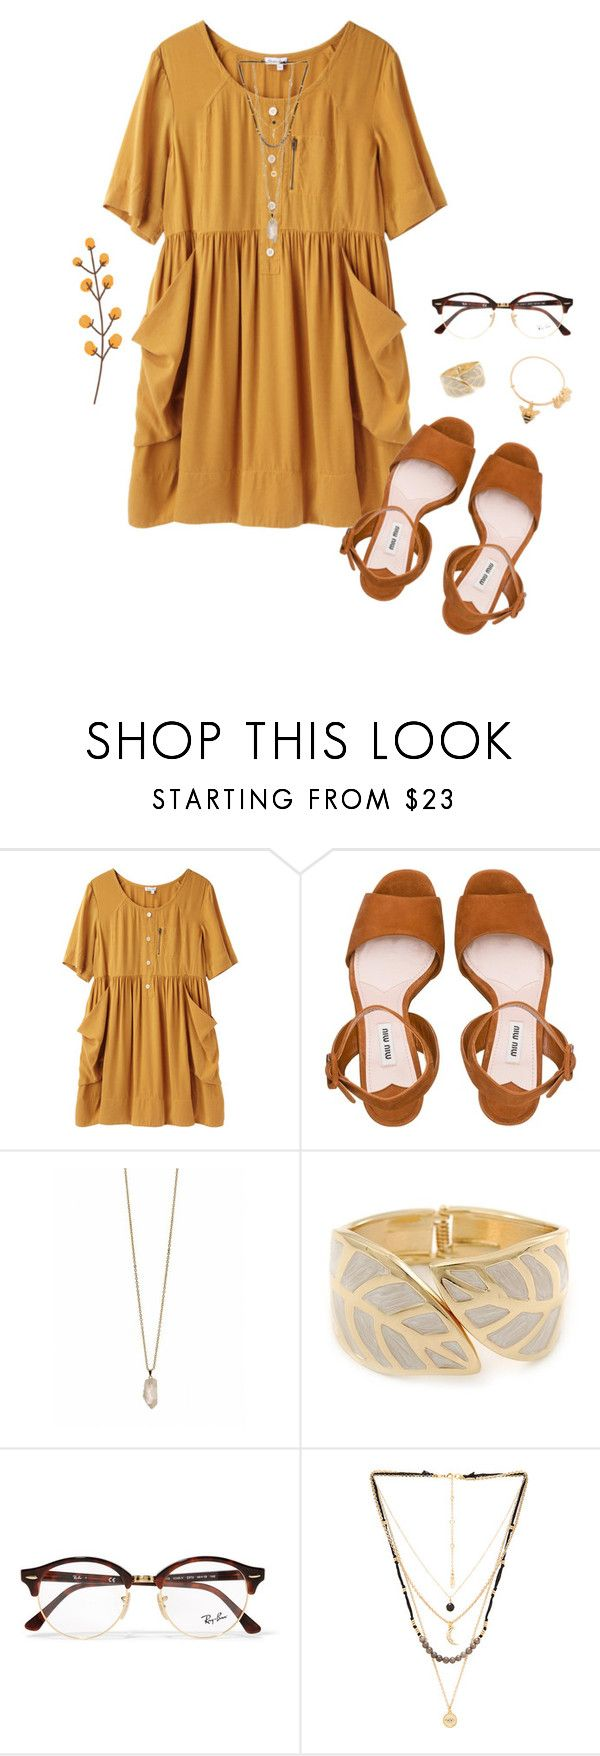 """""""wishing it was fall right now🍂"""" by caprirunyan ❤ liked on Polyvore featuring Steven Alan, Miu Miu, Zoya, Ray-Ban, Ettika and Alex and Ani"""